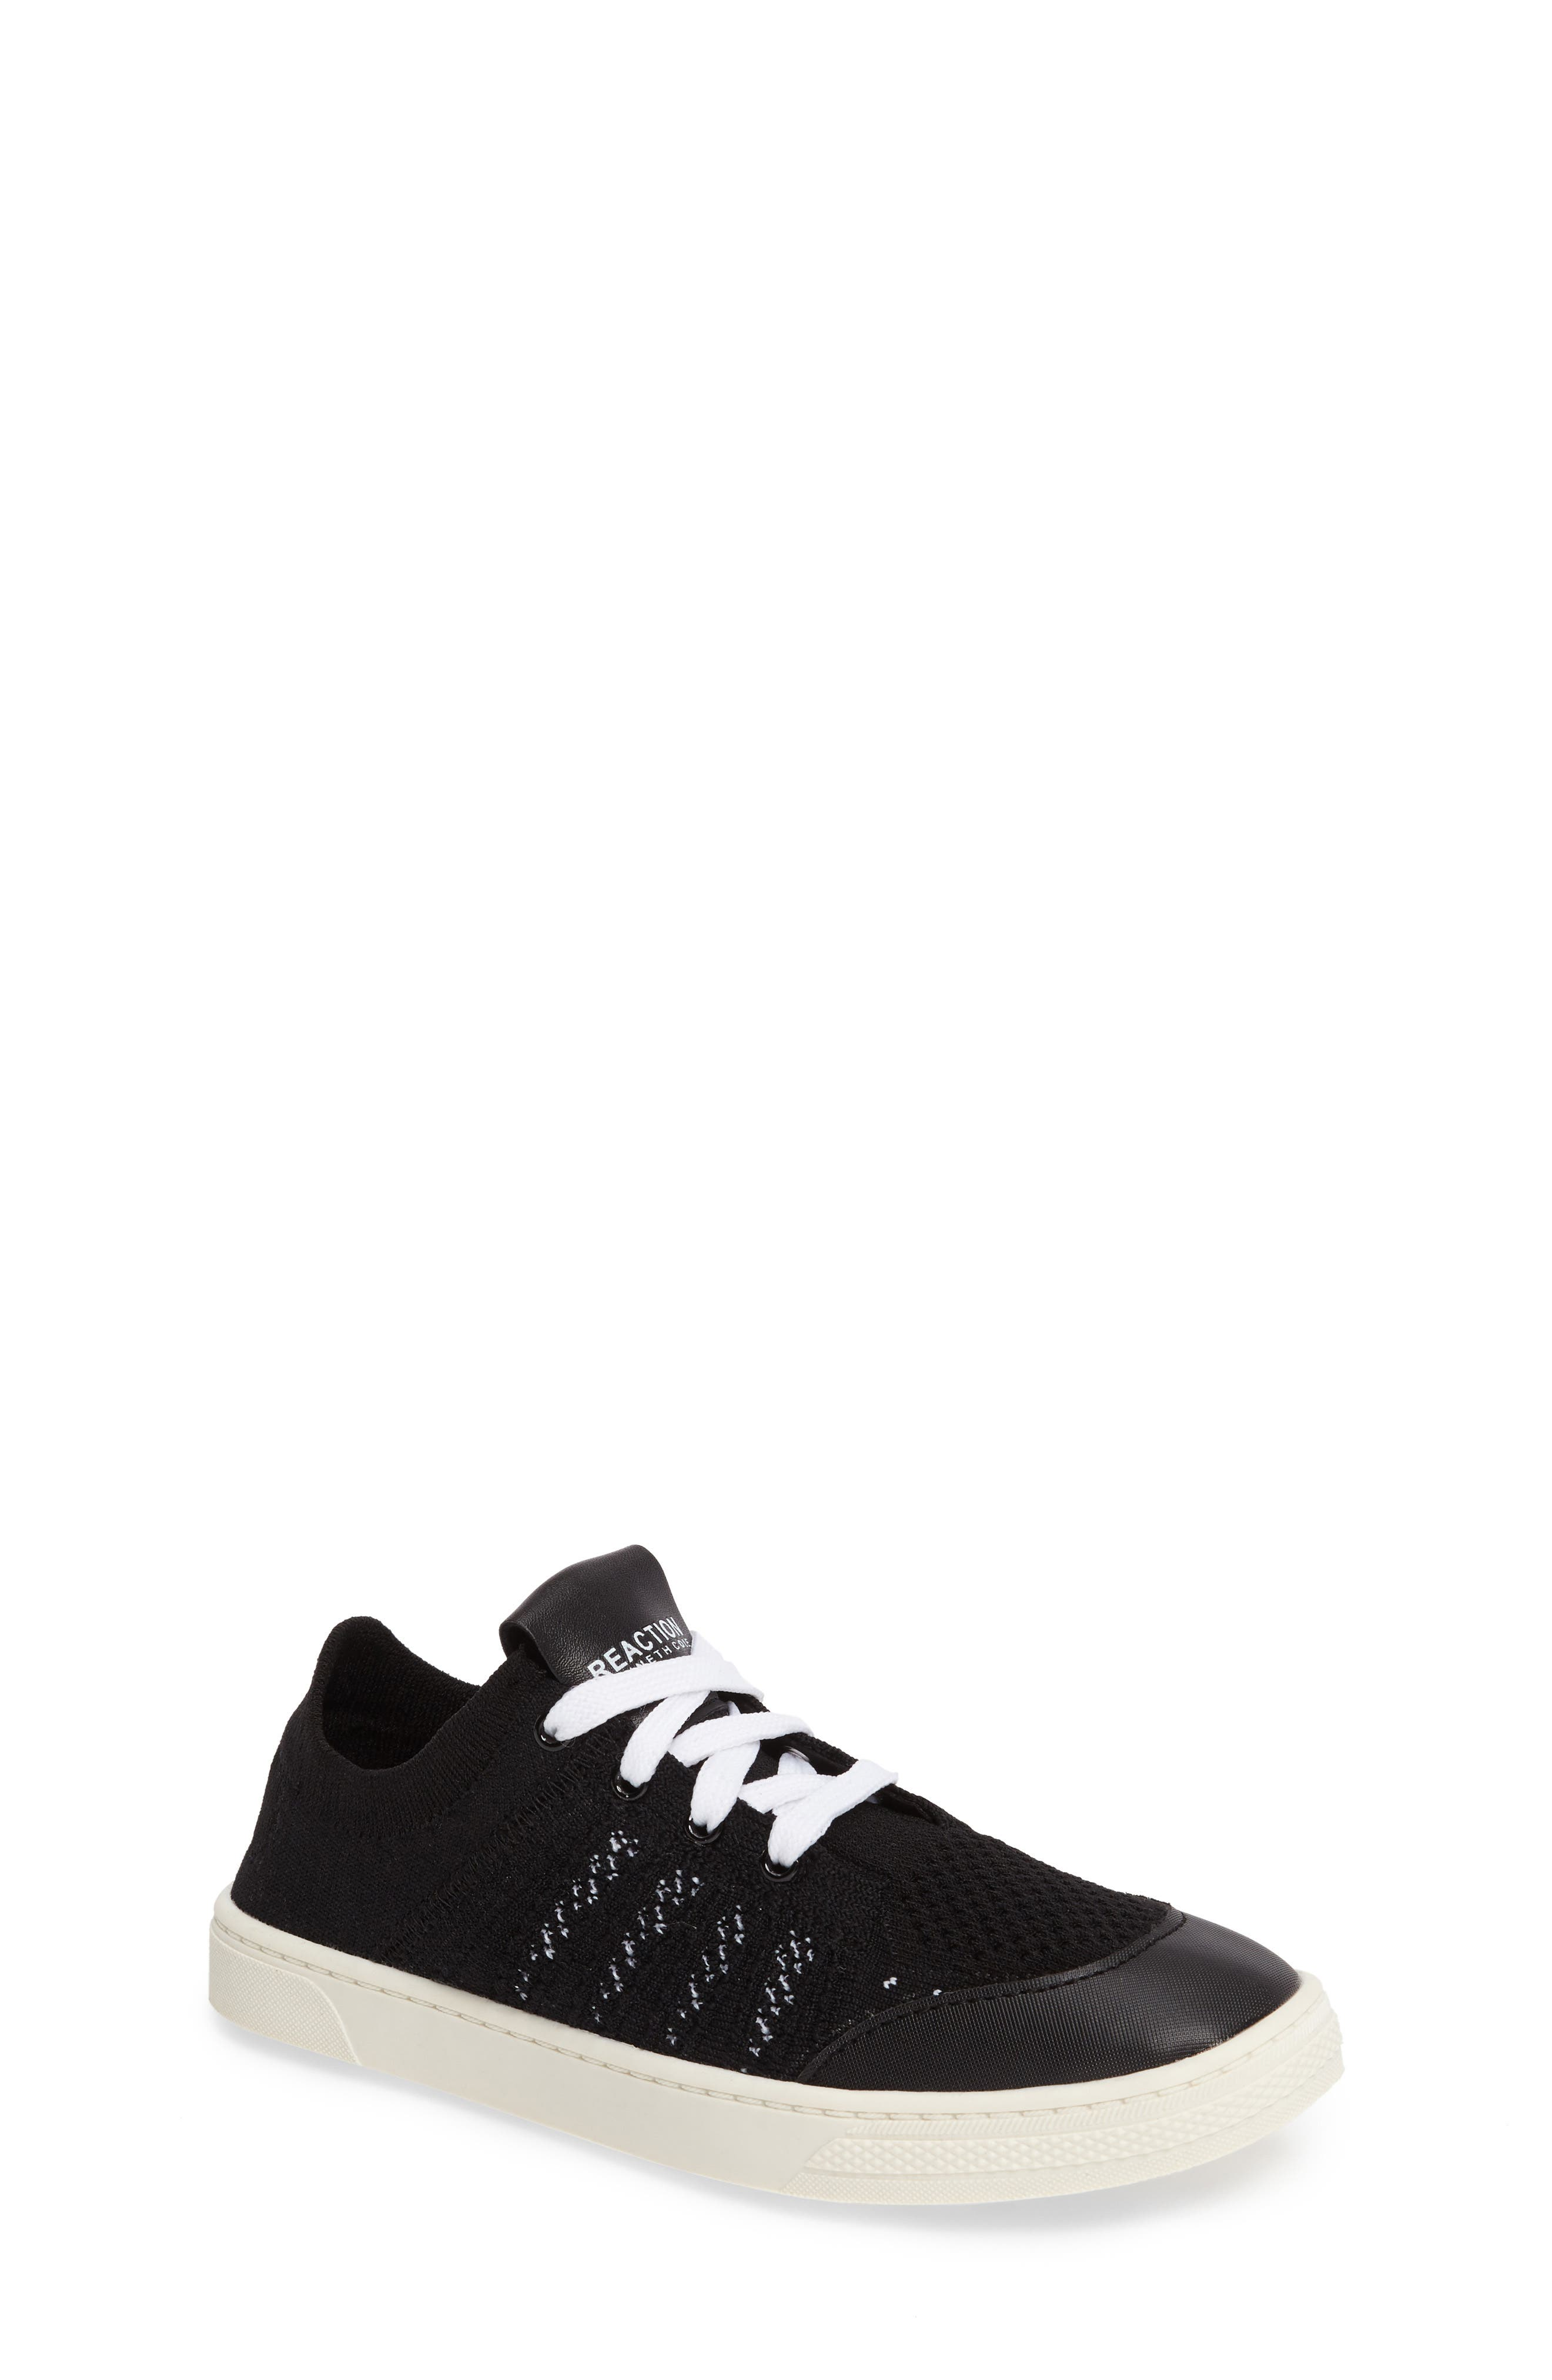 Kenneth Cole New York Kick Insight Woven Sneaker (Toddler, Little Kid & Big Kid)